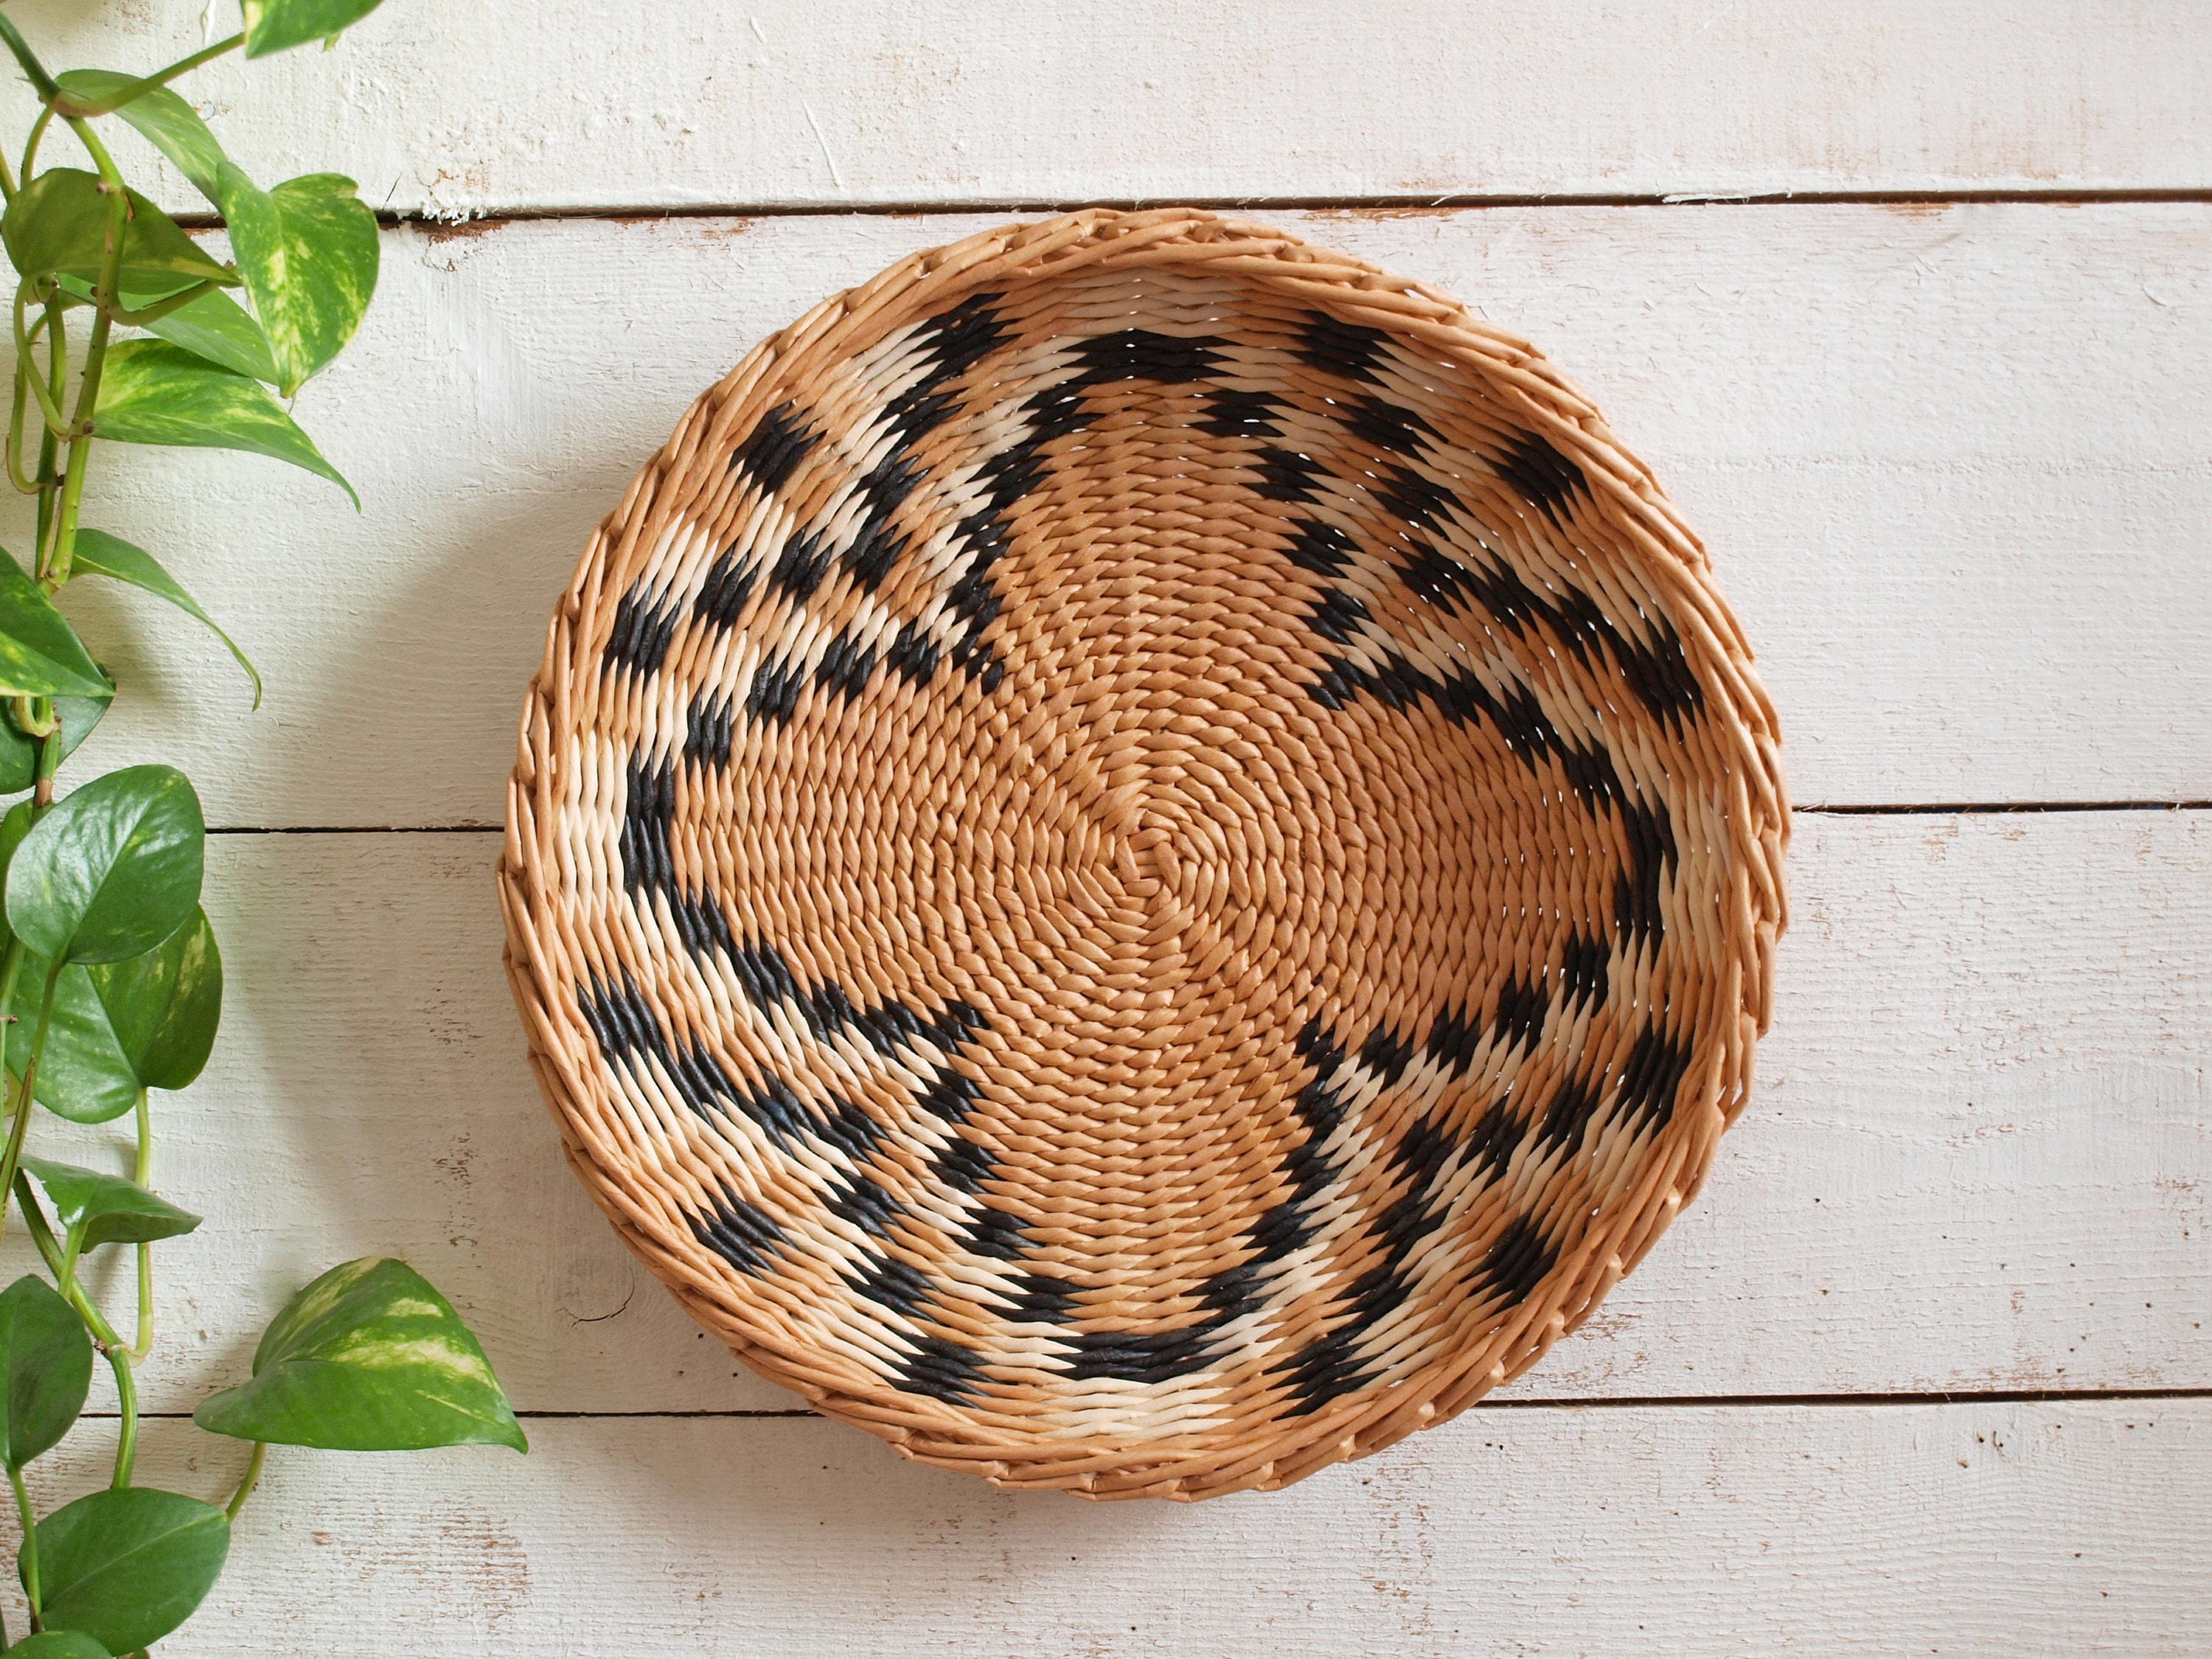 Wall Wicker Plate Wall Basket African Inspired Wall Art Boho Etsy